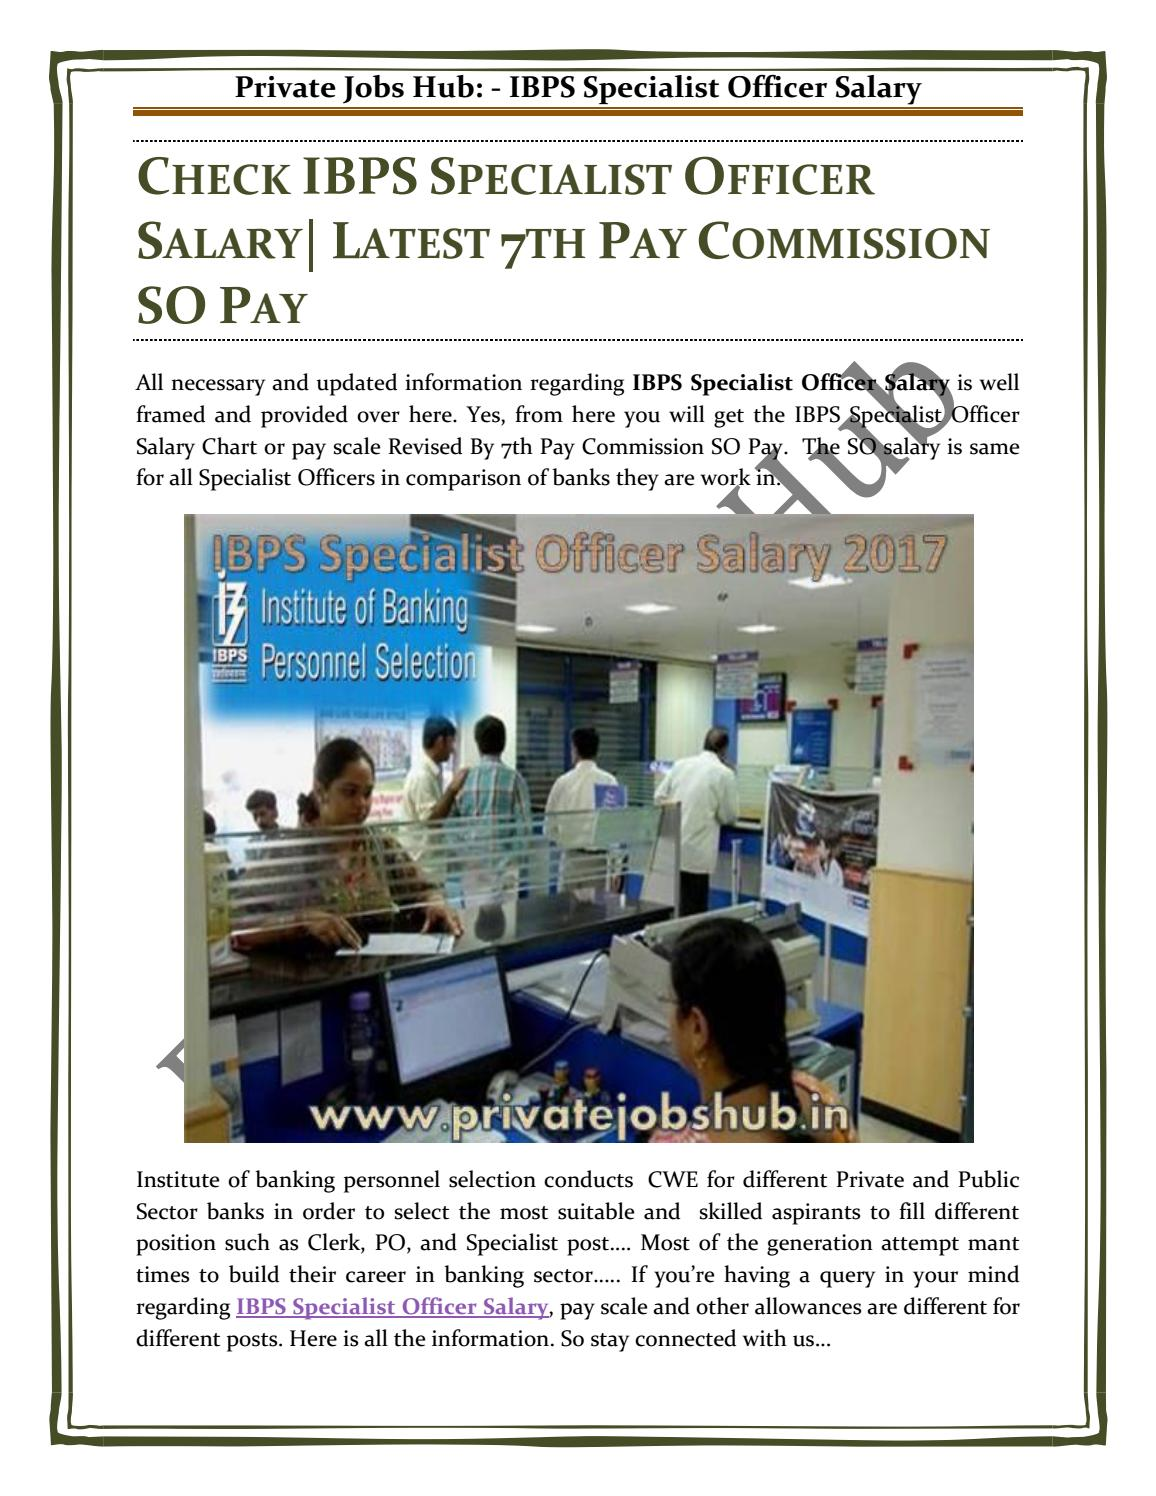 CHECK IBPS SPECIALIST OFFICER SALARY  LATEST 7TH PAY